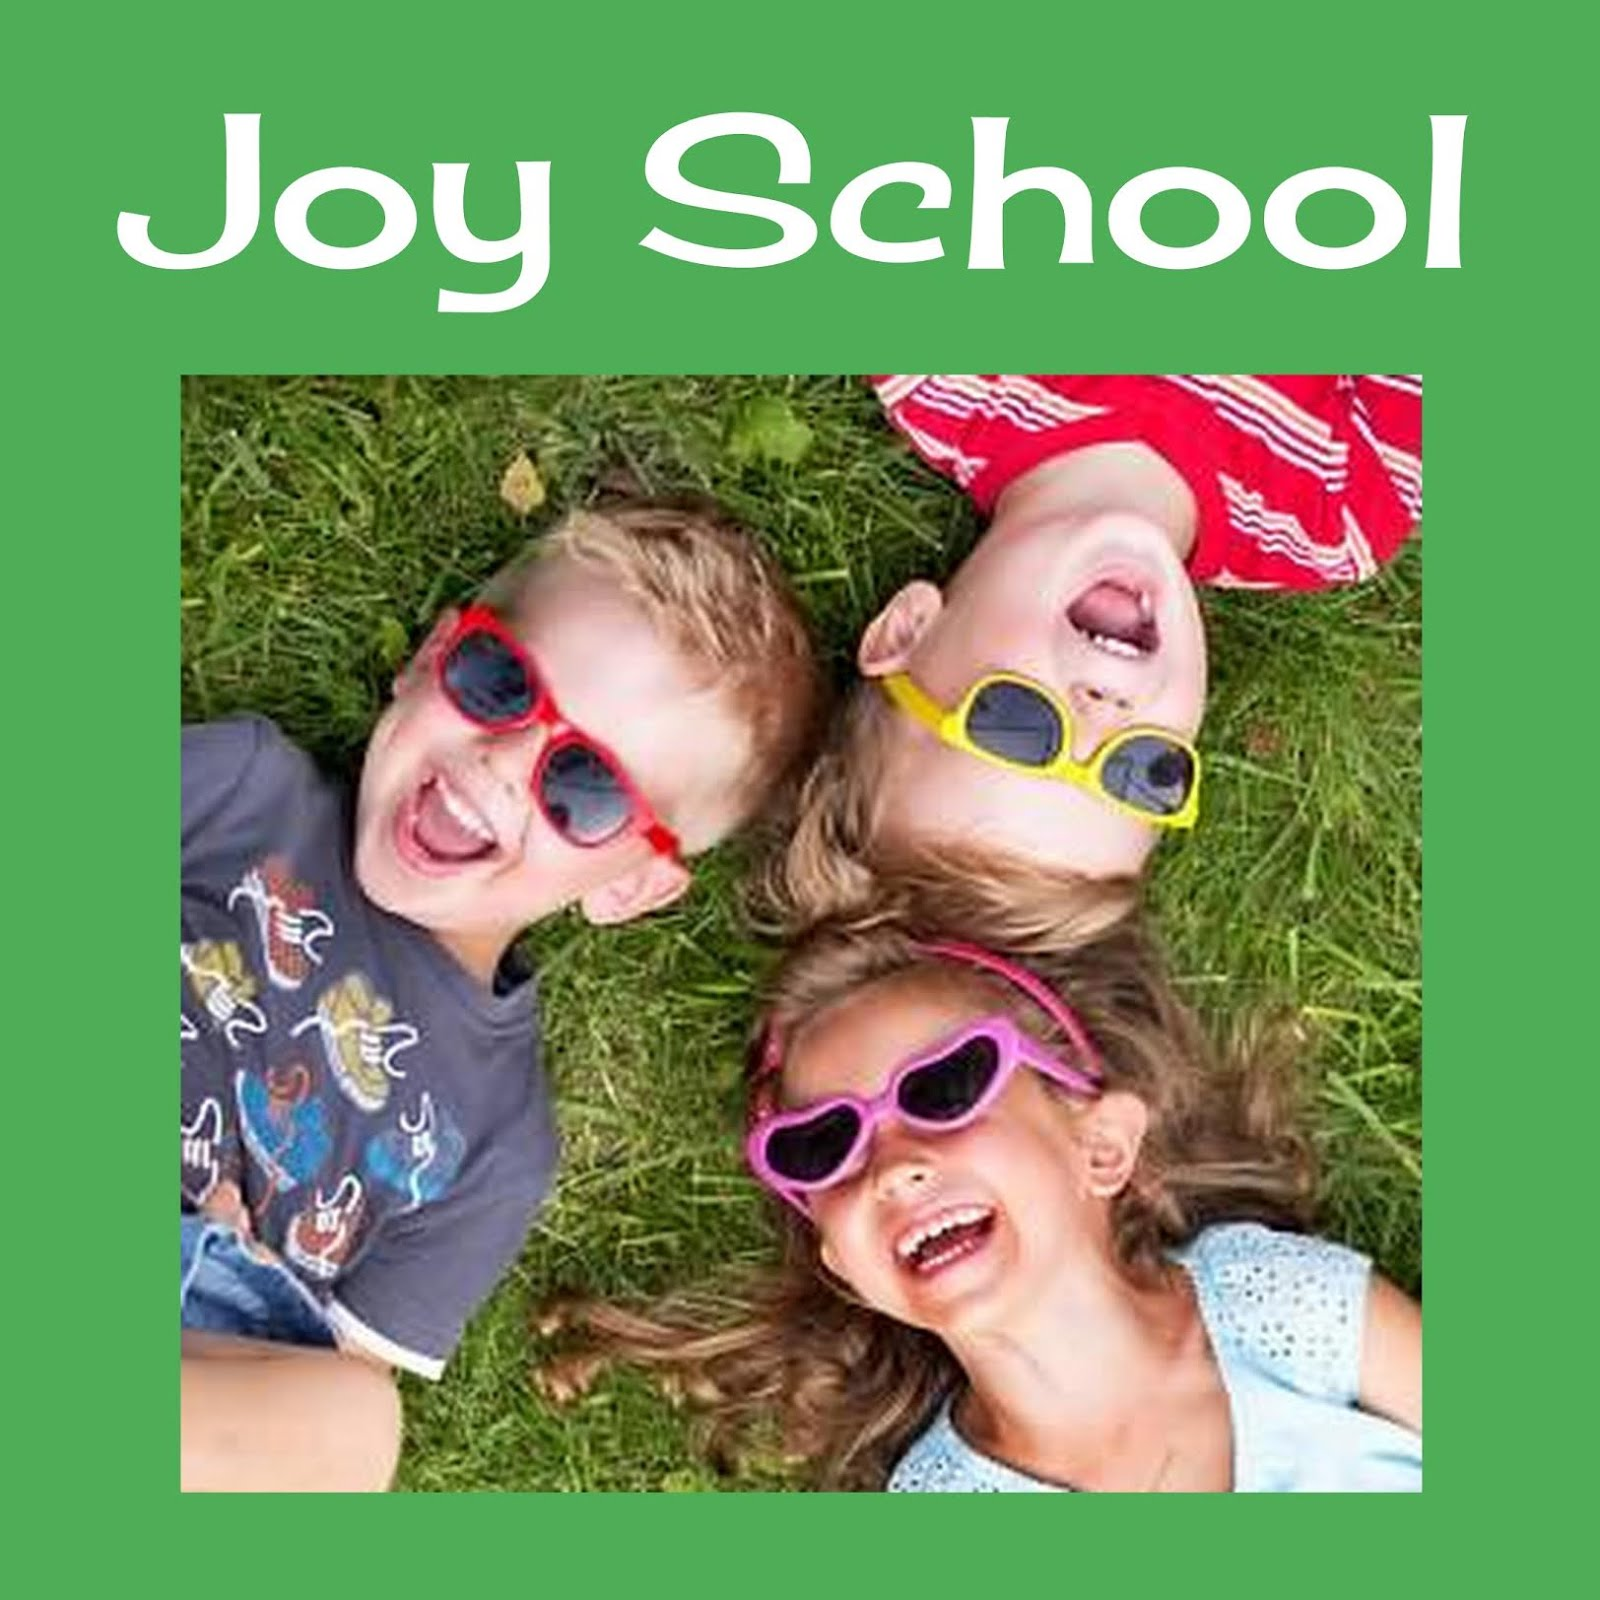 I Love Joy School